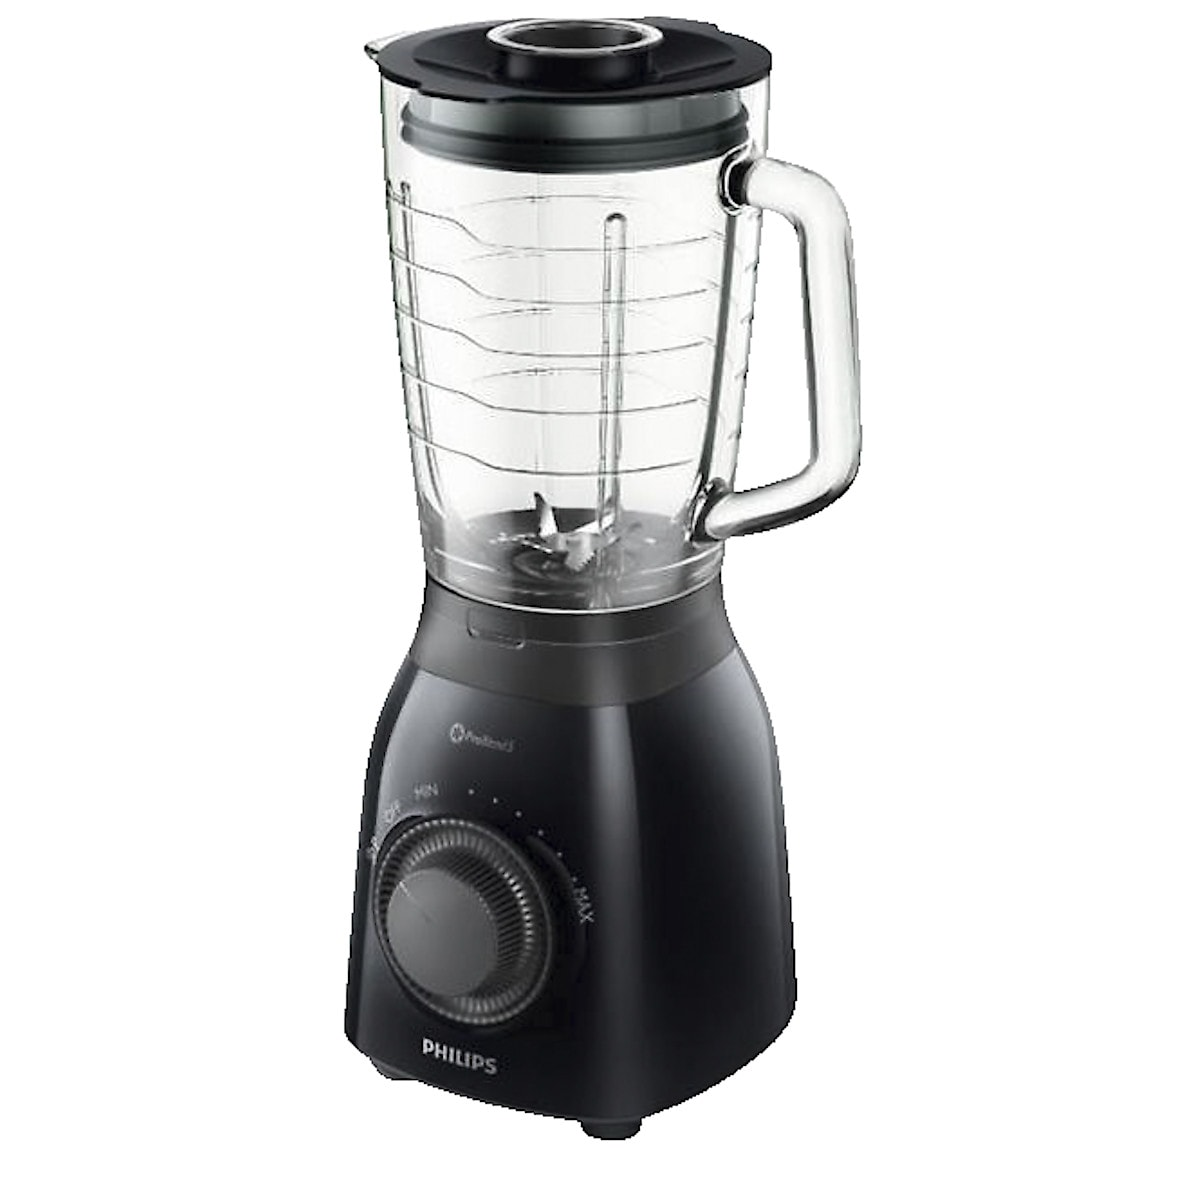 Philips Viva Collection HR2173/90 Blender